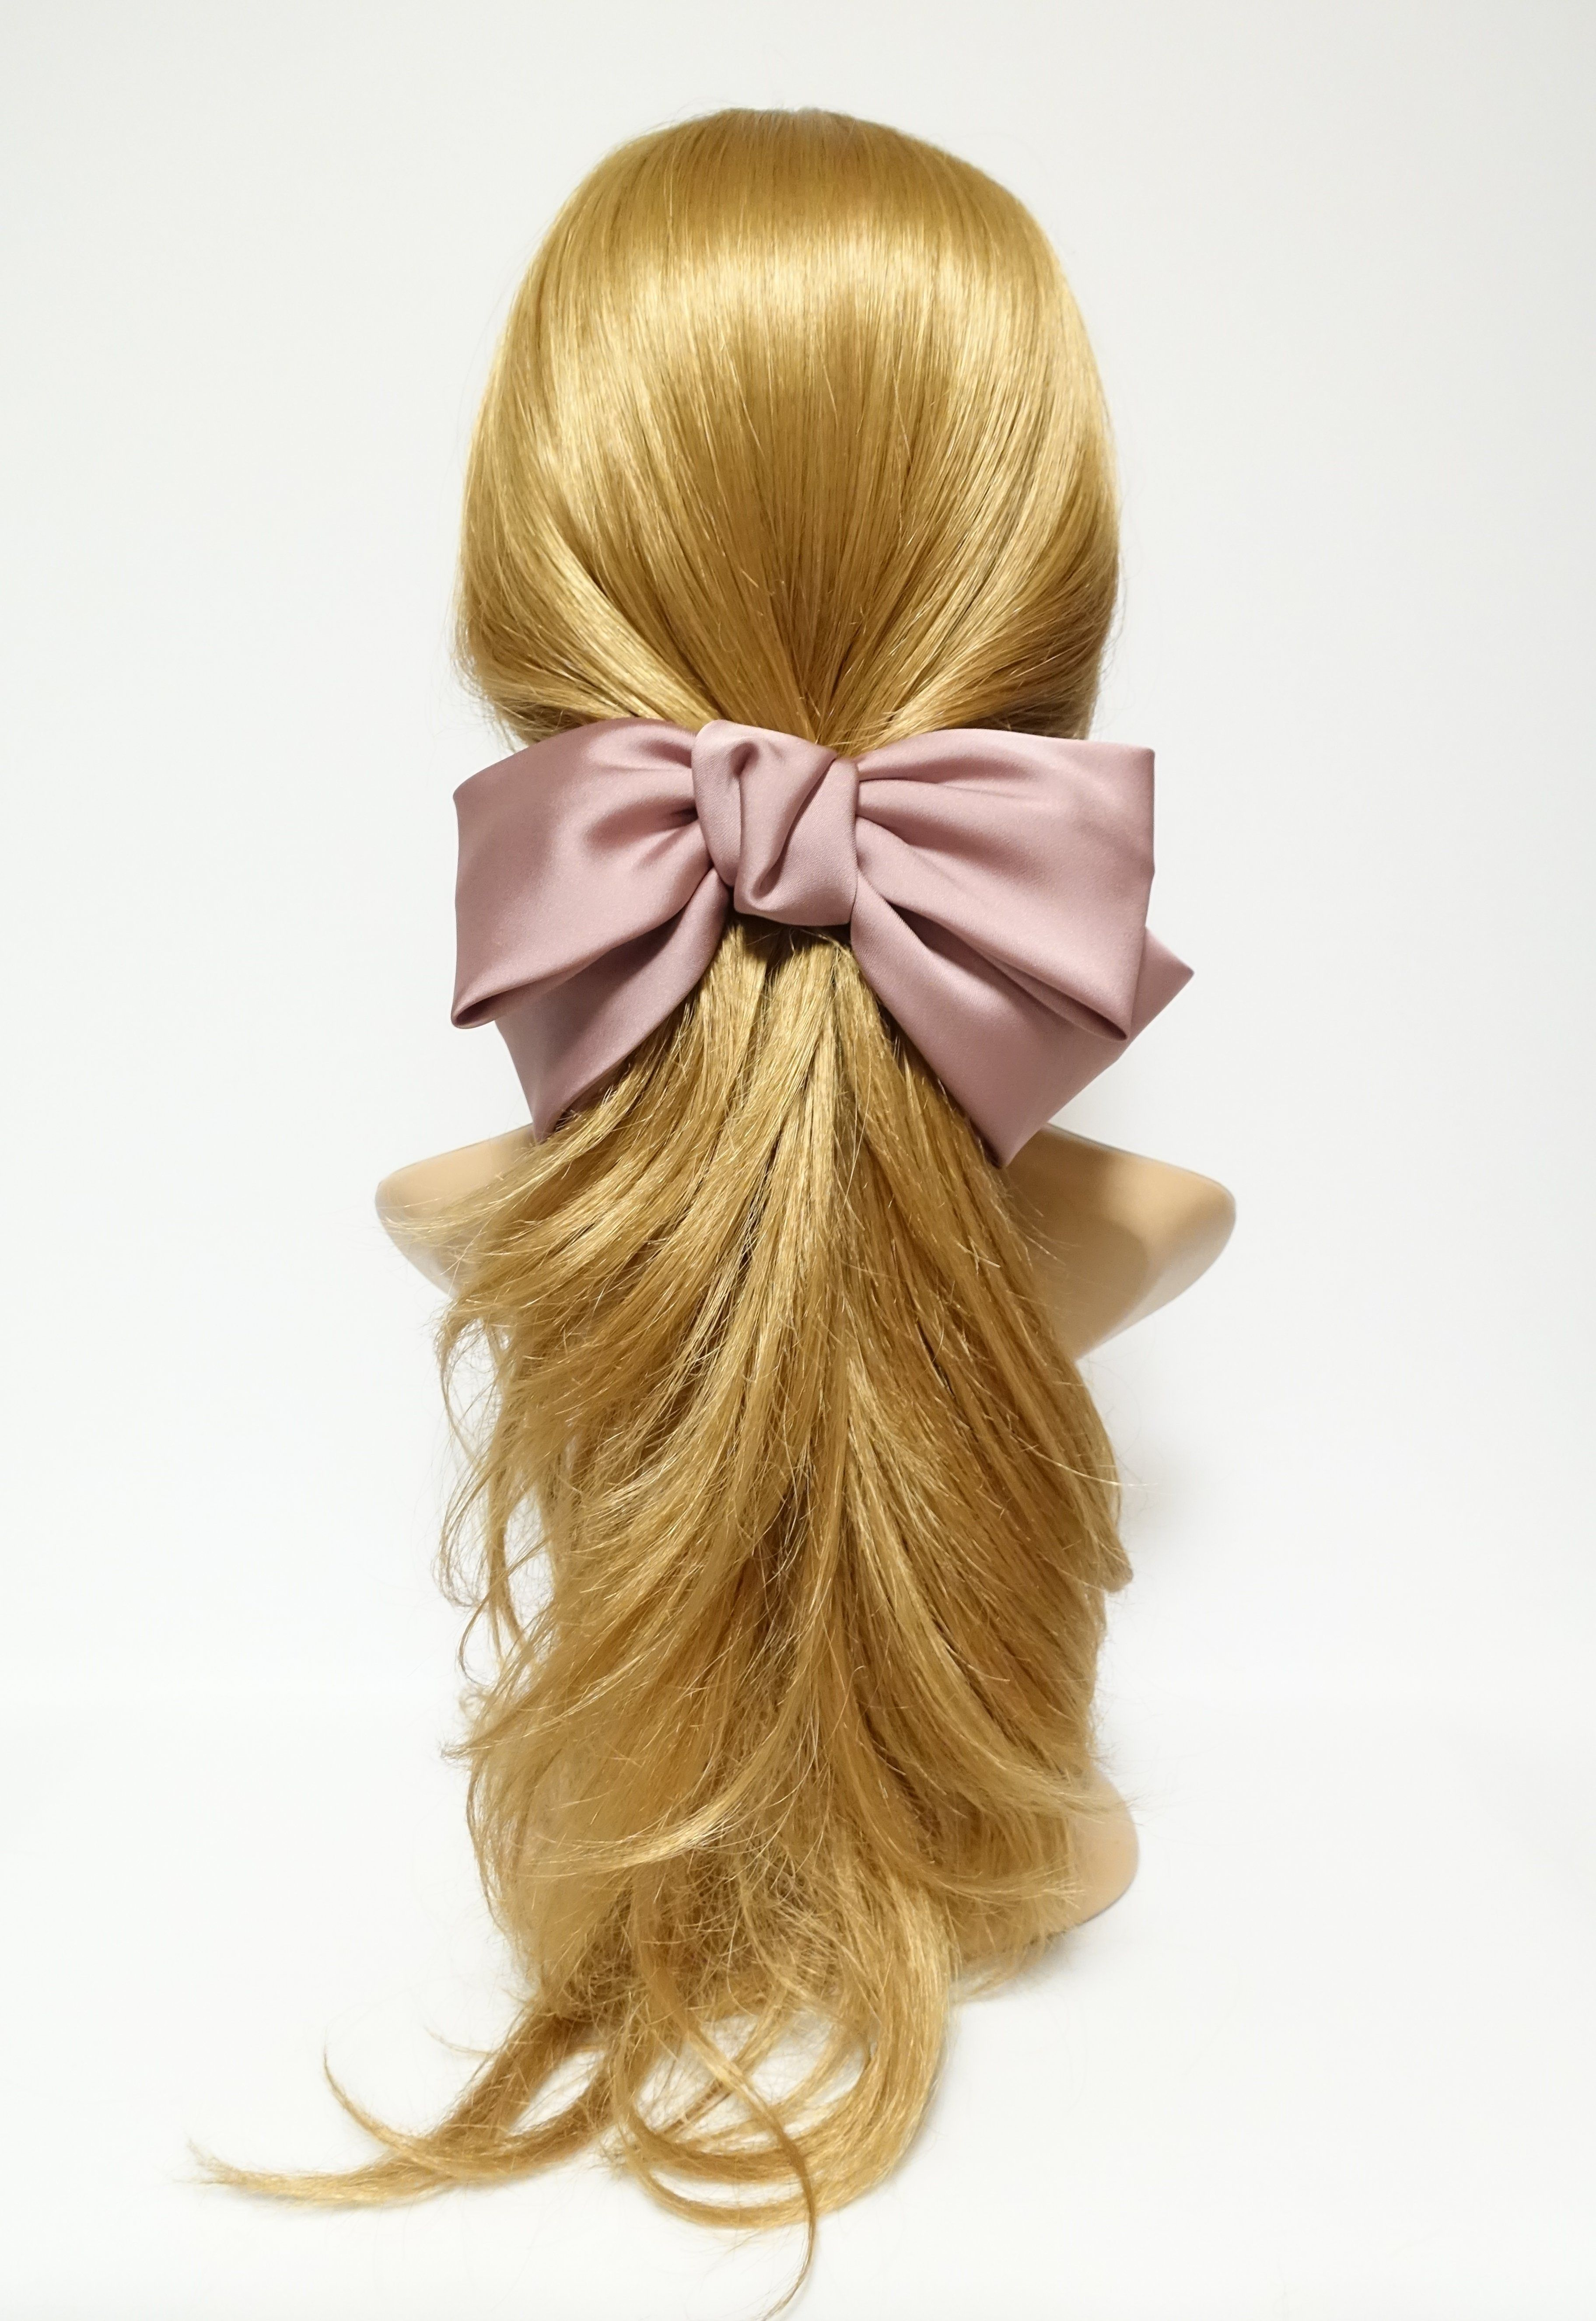 Big satin hair bow french hair barrette for Women Texas hair bow  hairbow   satinhairbow  bigbow  hairbarrette  style  veryshine  gift  hairaccessory 0bf472b88aca